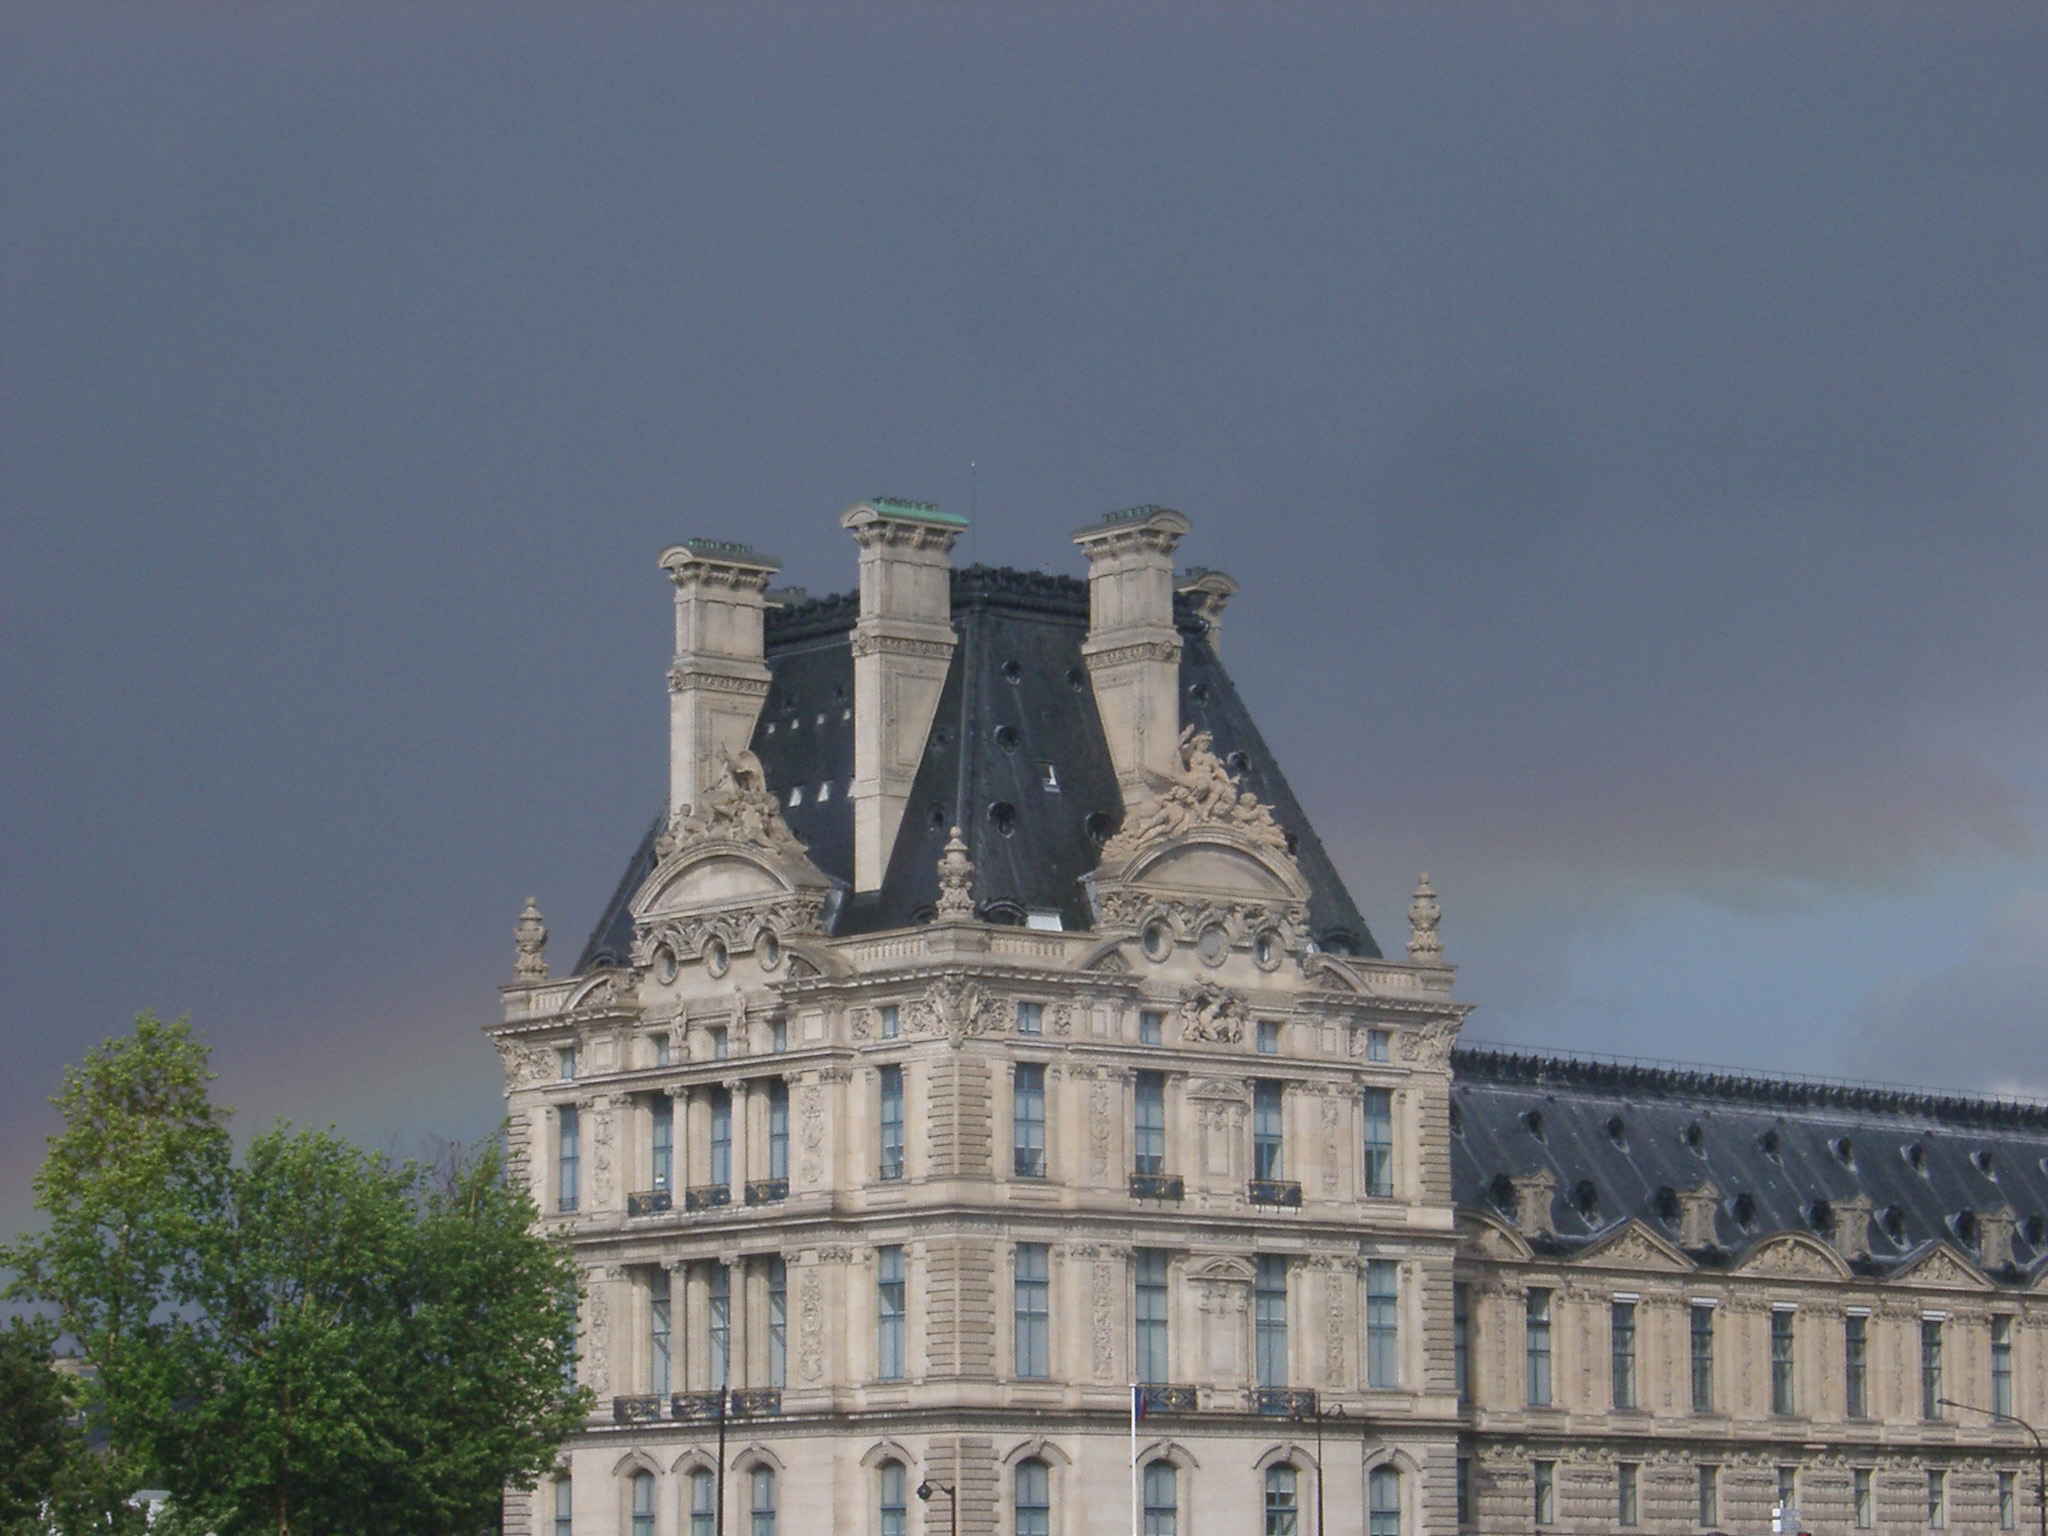 Paris rainbow in a rainy stormy grey sky behind an imposing historical urban stone building